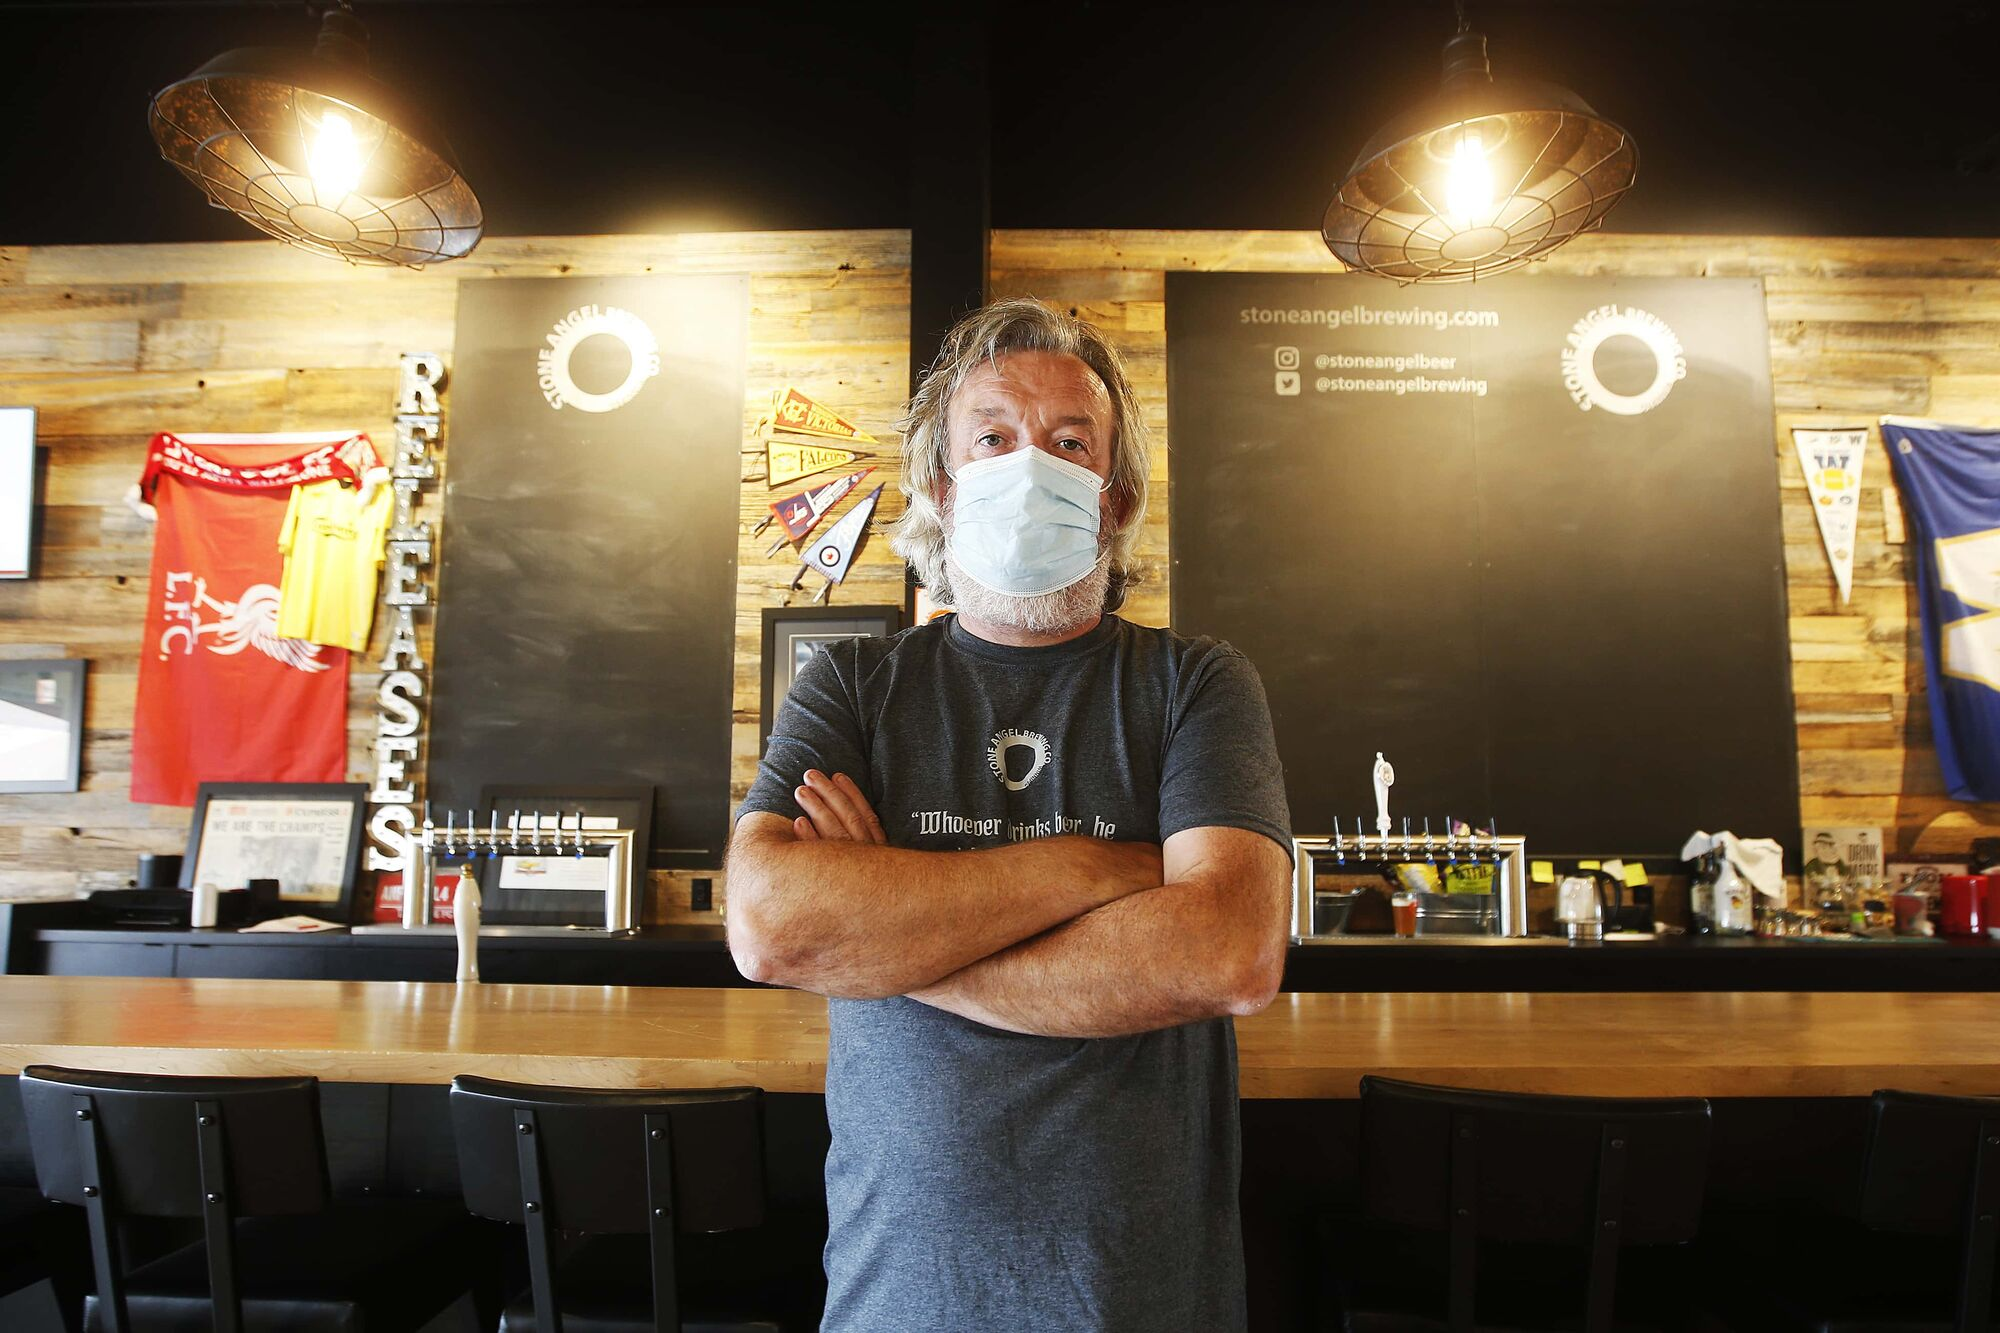 Co-owner Paul Clerkin says Stone Angel Brewing is keeping the mask and vaccination status checks until the foreseeable future. (John Woods / Winnipeg Free Press)